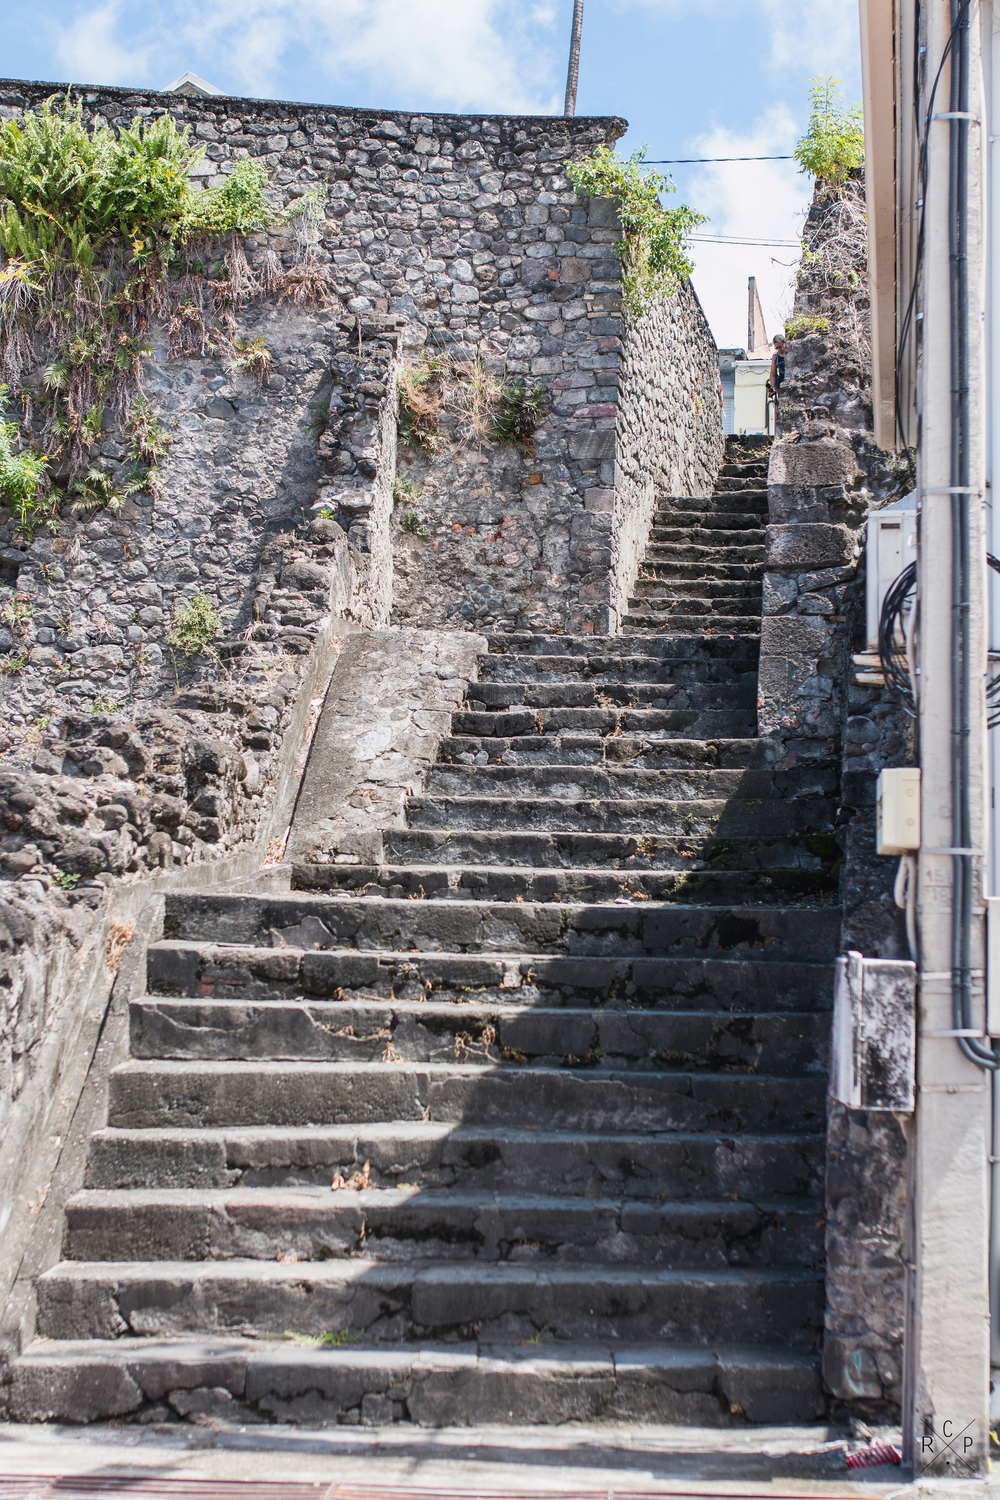 Stairs - Saint Pierre, Martinique 06/03/2016